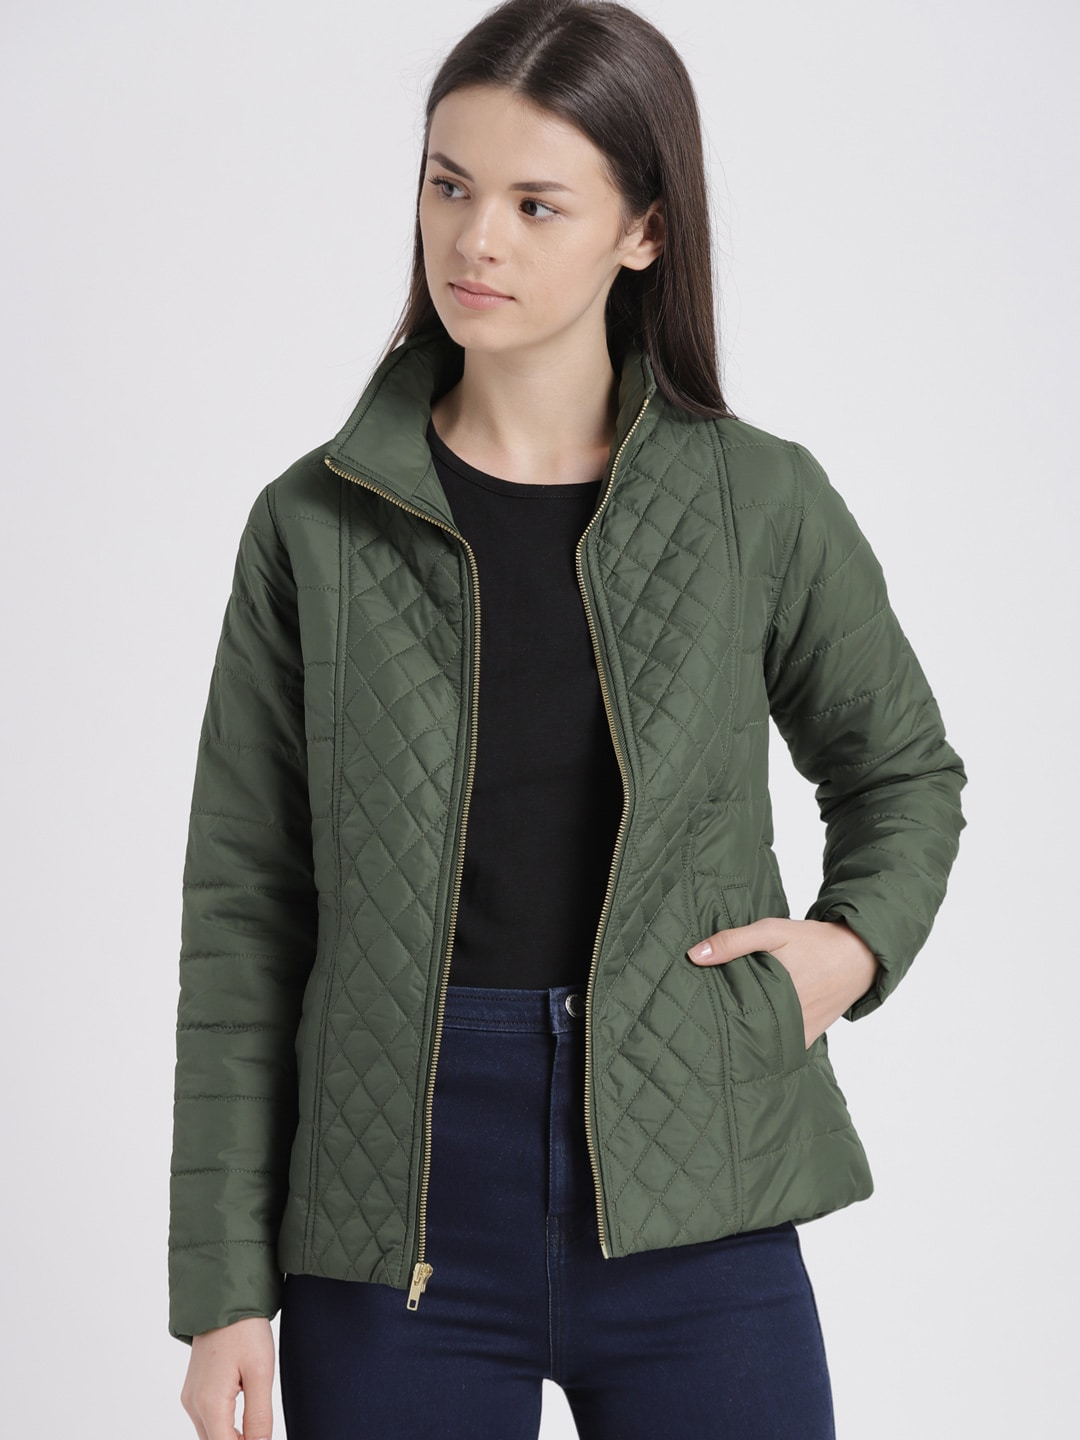 730600758 Olive Green Jackets - Buy Olive Green Jackets online in India